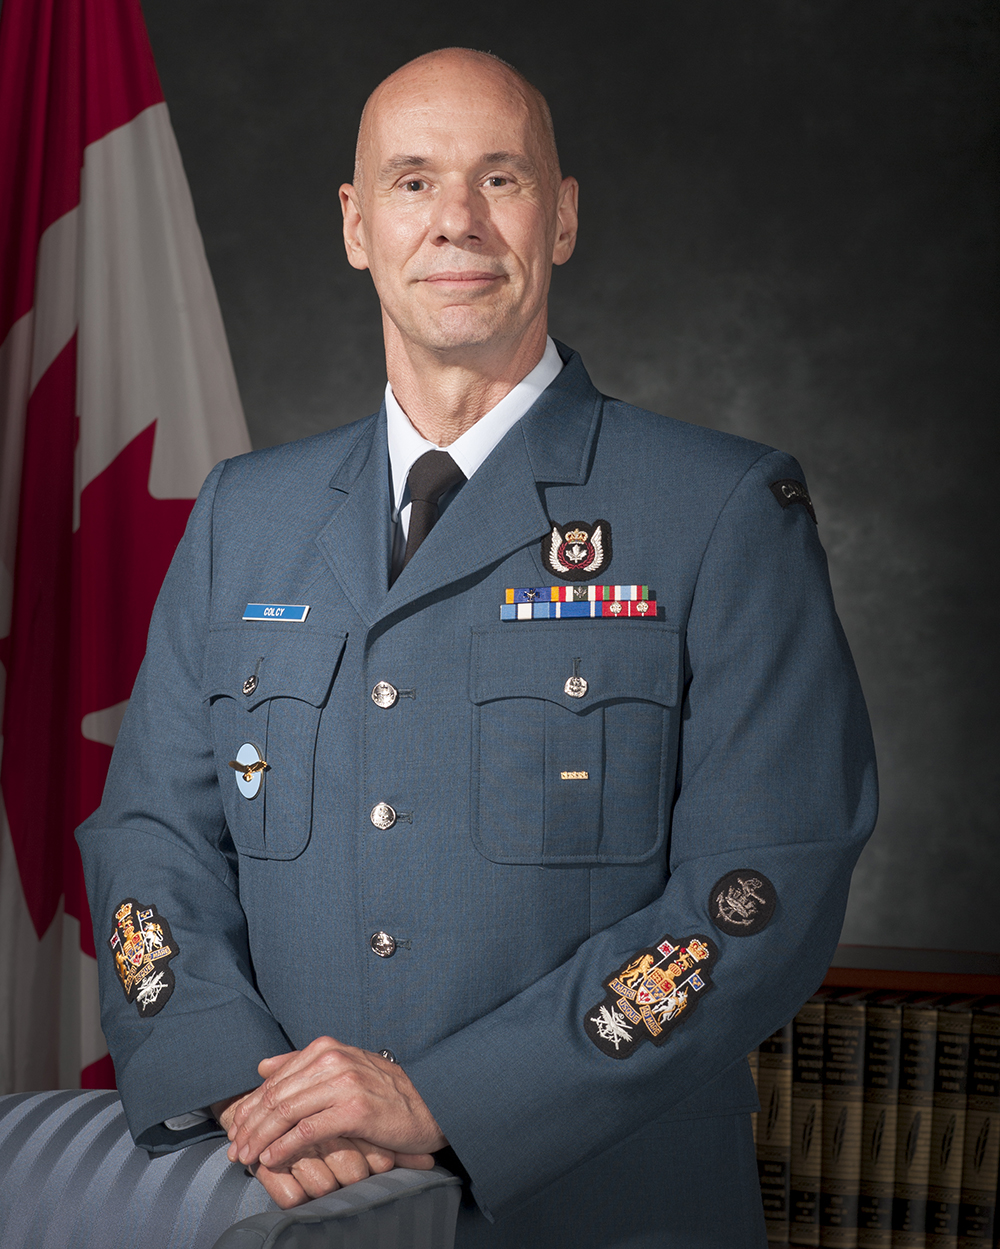 Chief Warrant Officer Kevin D. Colcy